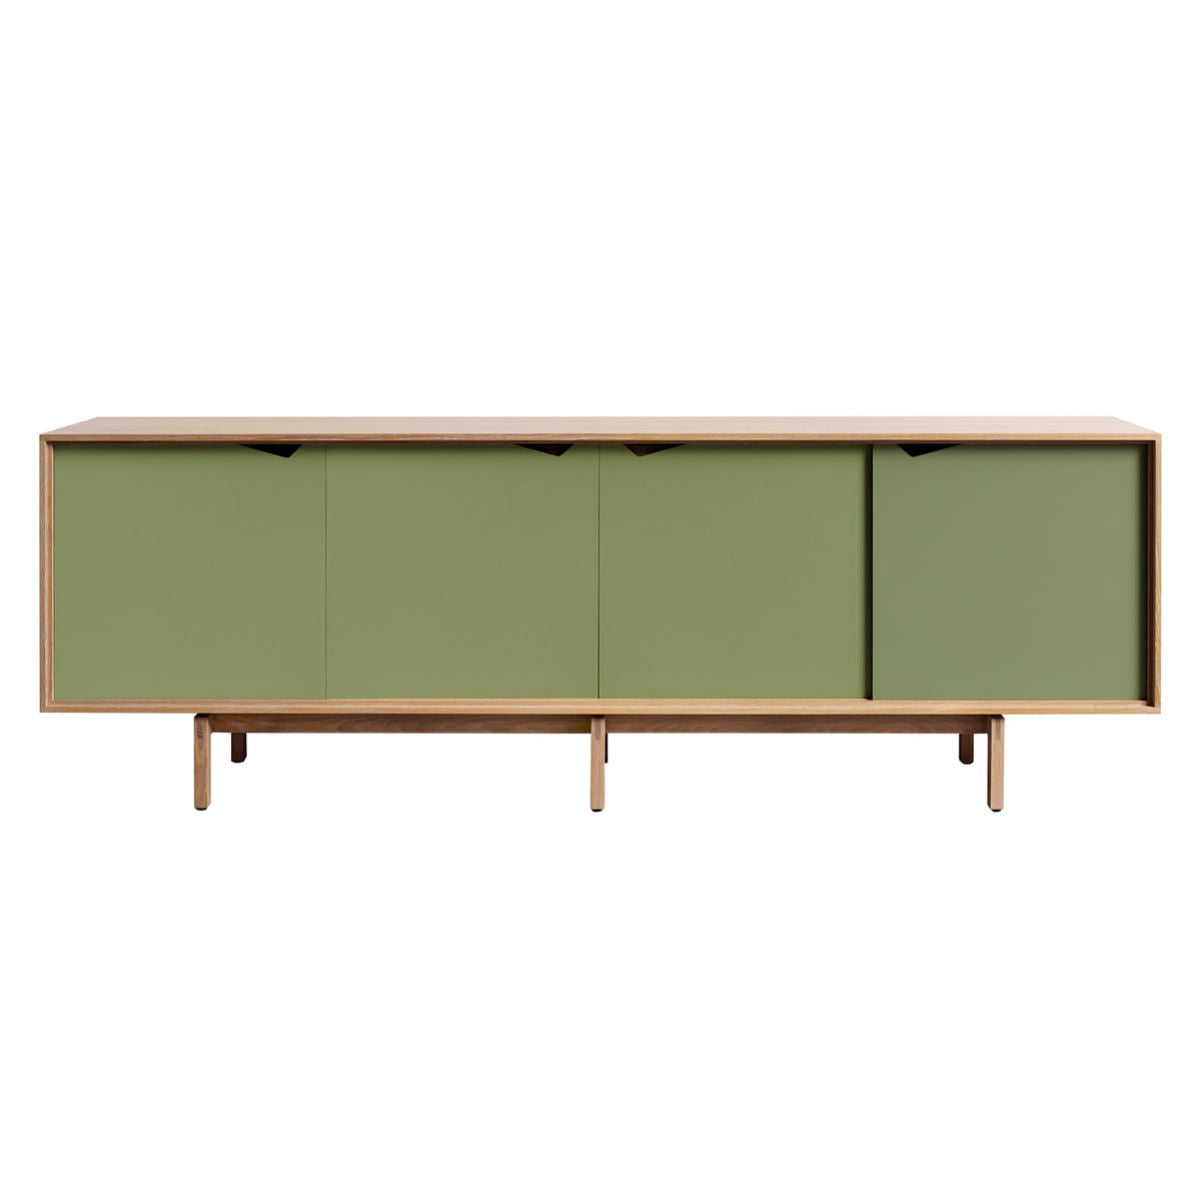 Andersen S1 sideboard, oiled oak